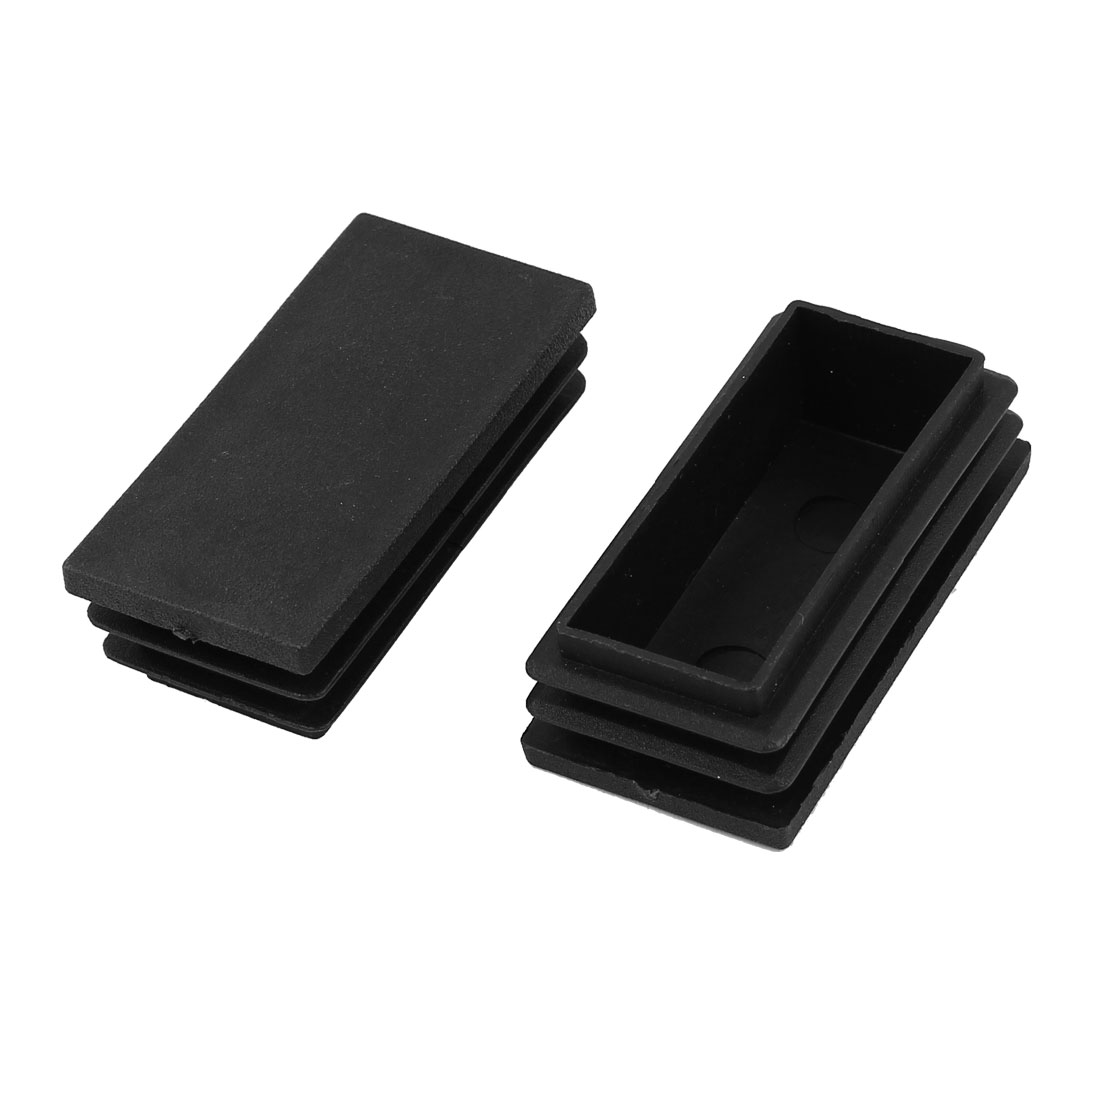 2 Pieces Black Plastic Rectangle Blanking End Caps Tubing Tube Cover Inserts 30mm x 60mm